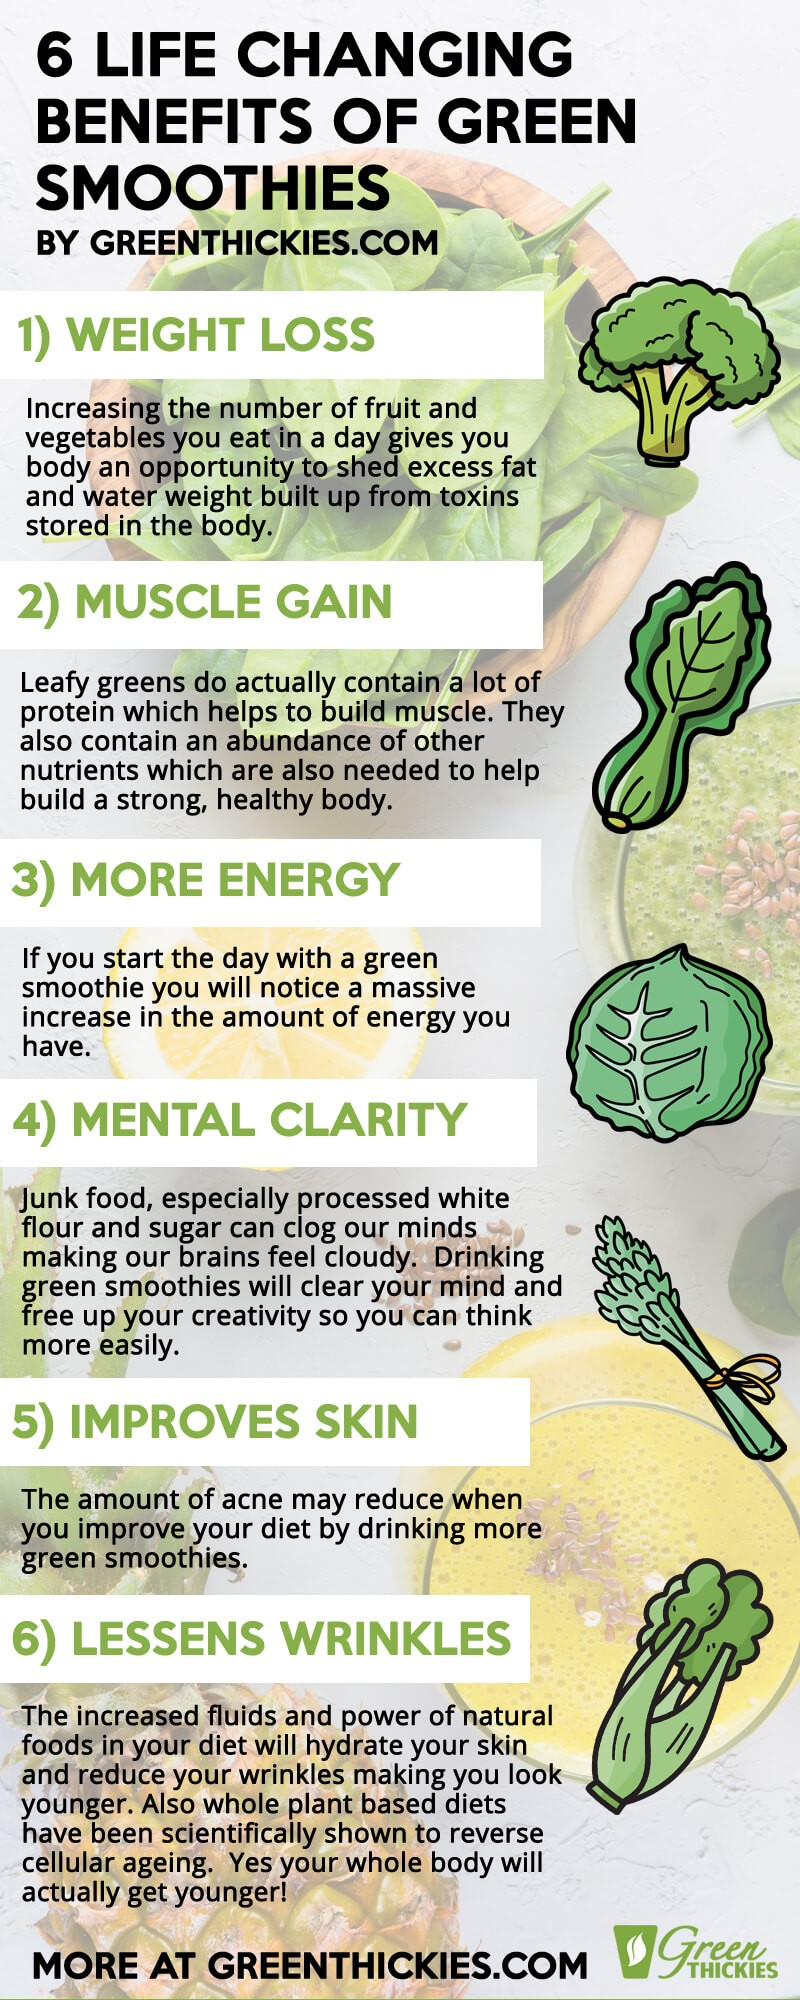 Best Green Smoothie For Weight Loss That Actually Works; LIFE CHANGING BENEFITS OF GREEN SMOOTHIES